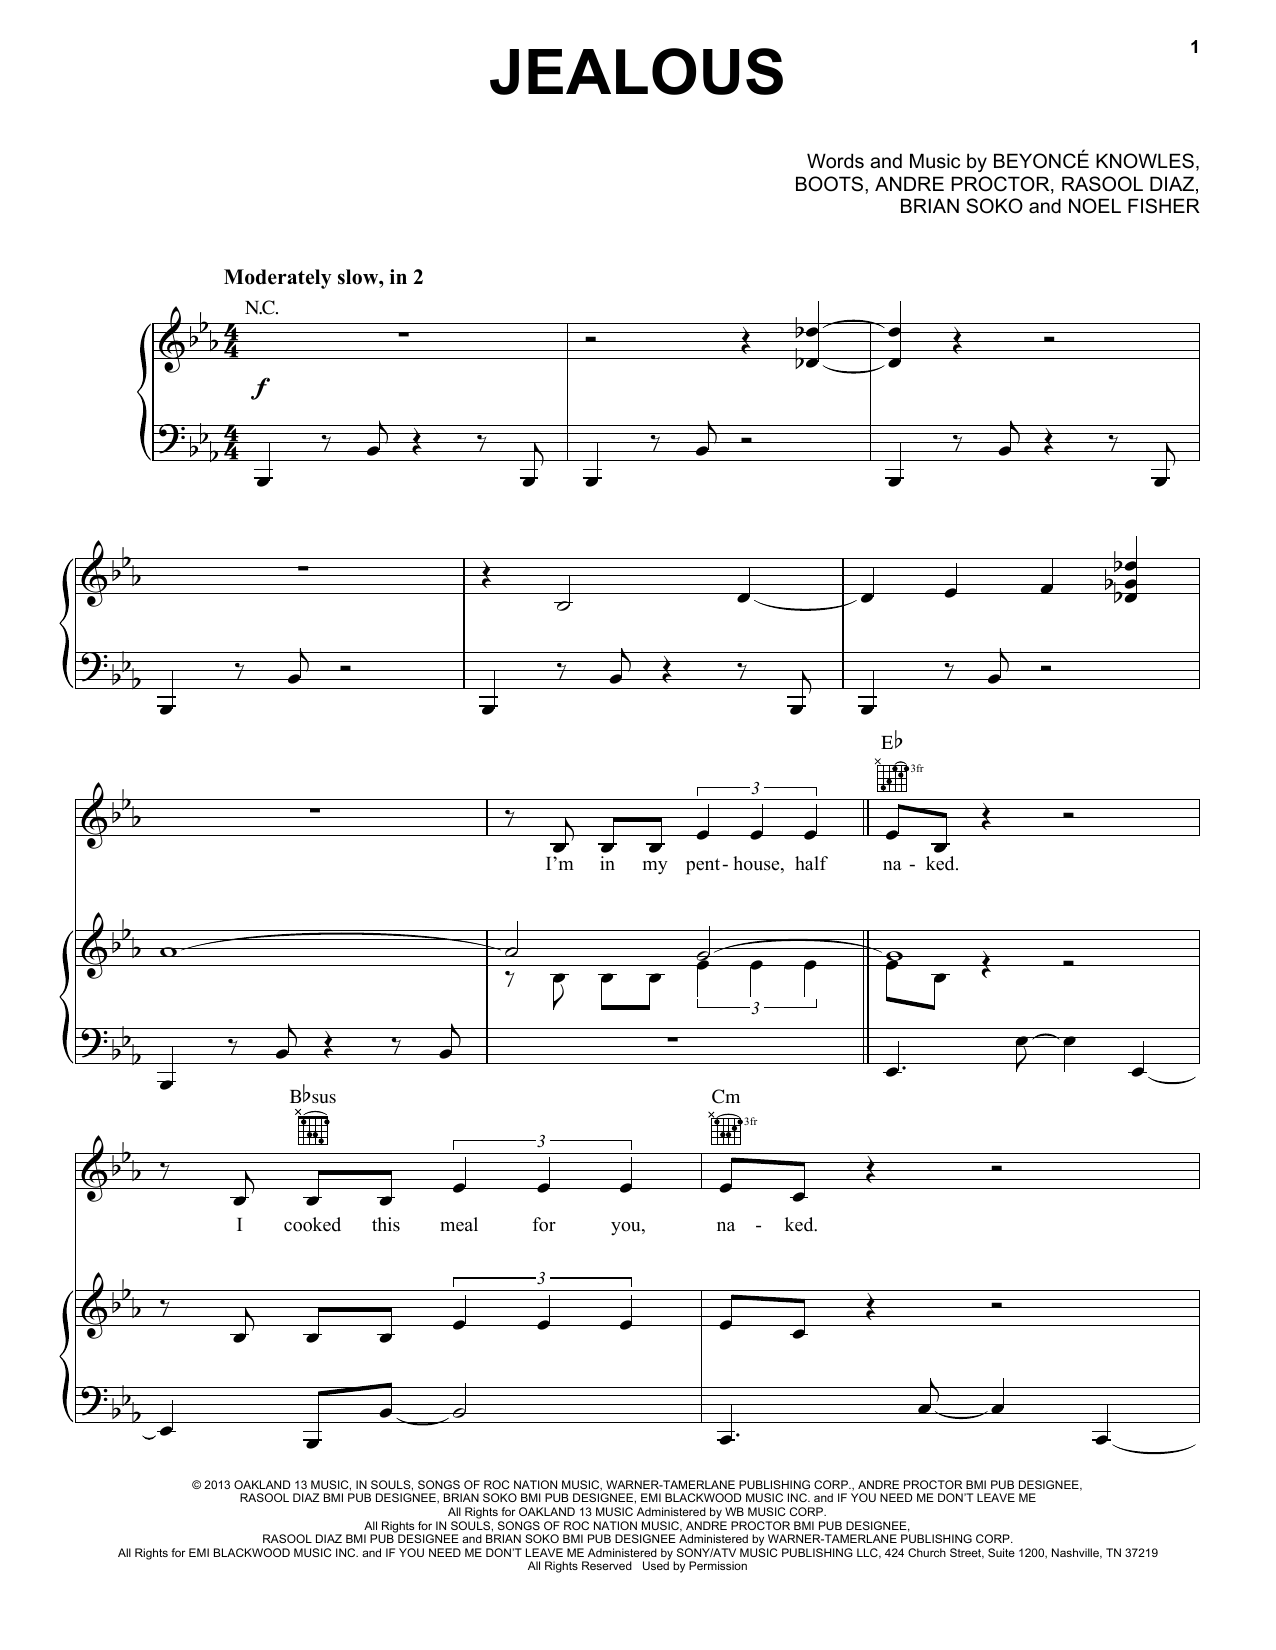 Jealous : Sheet Music Direct